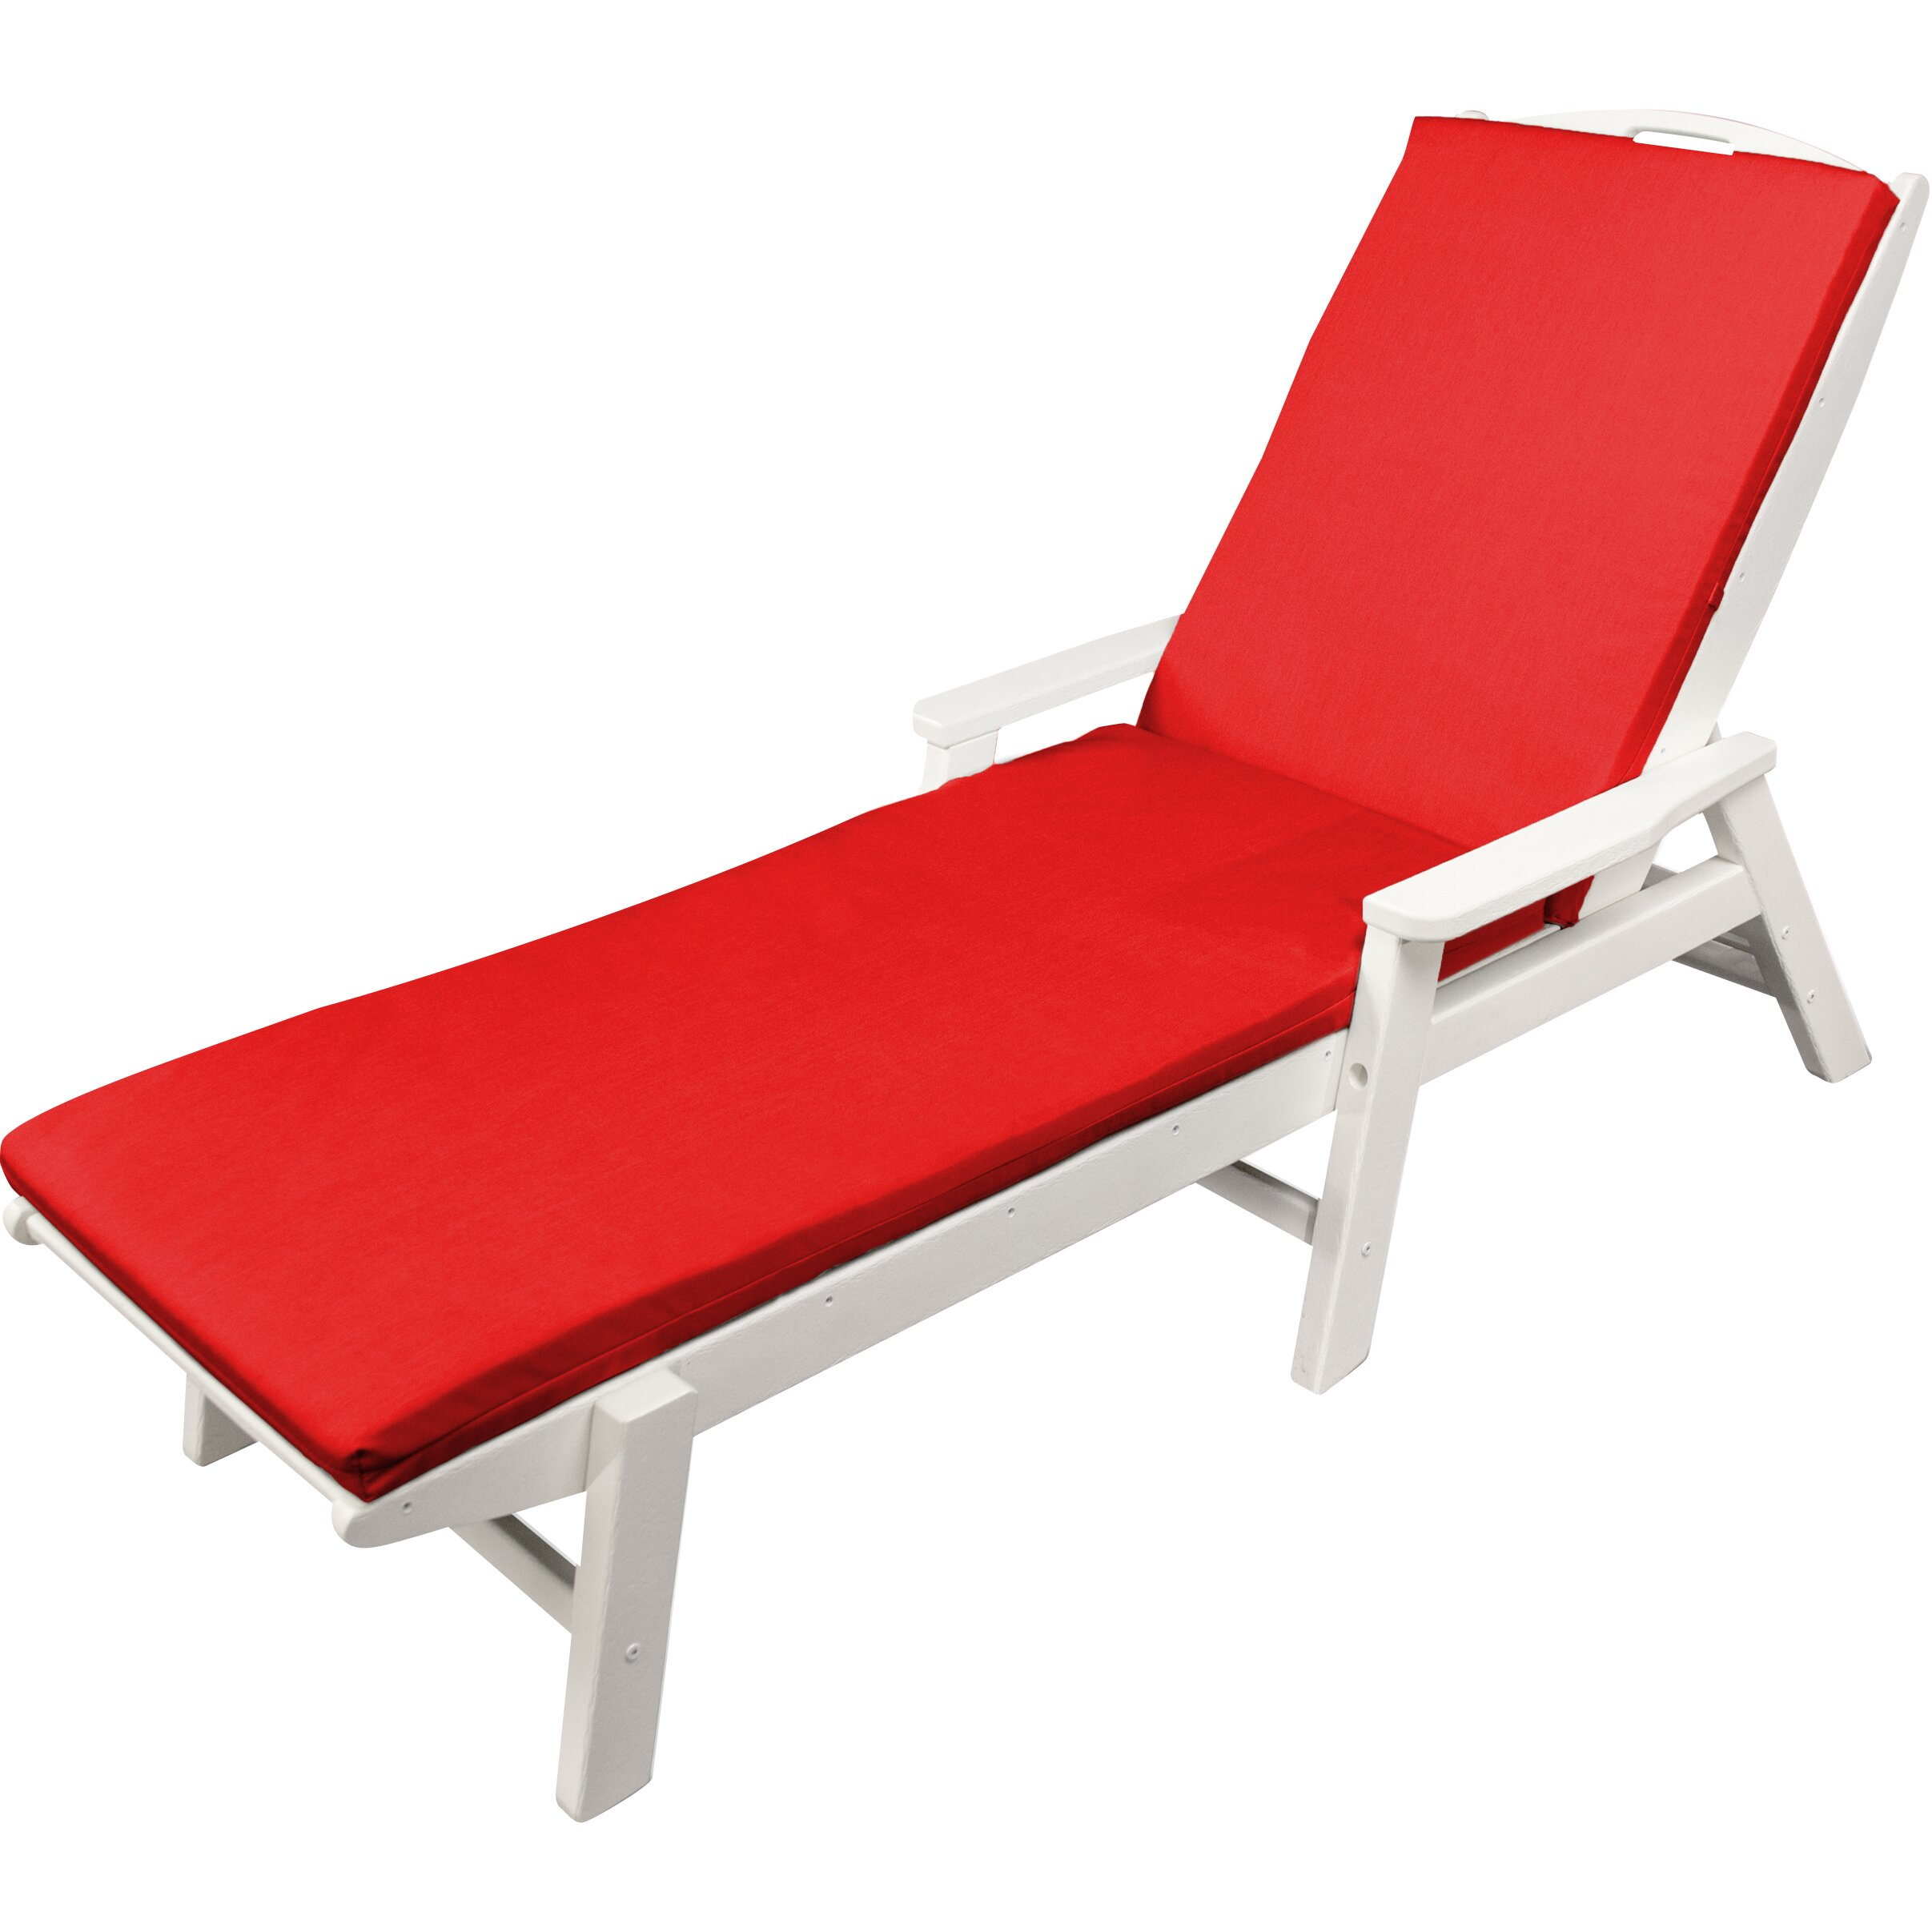 Ateeva outdoor sunbrella chaise lounge cushion reviews for Chaise lounge cushion outdoor